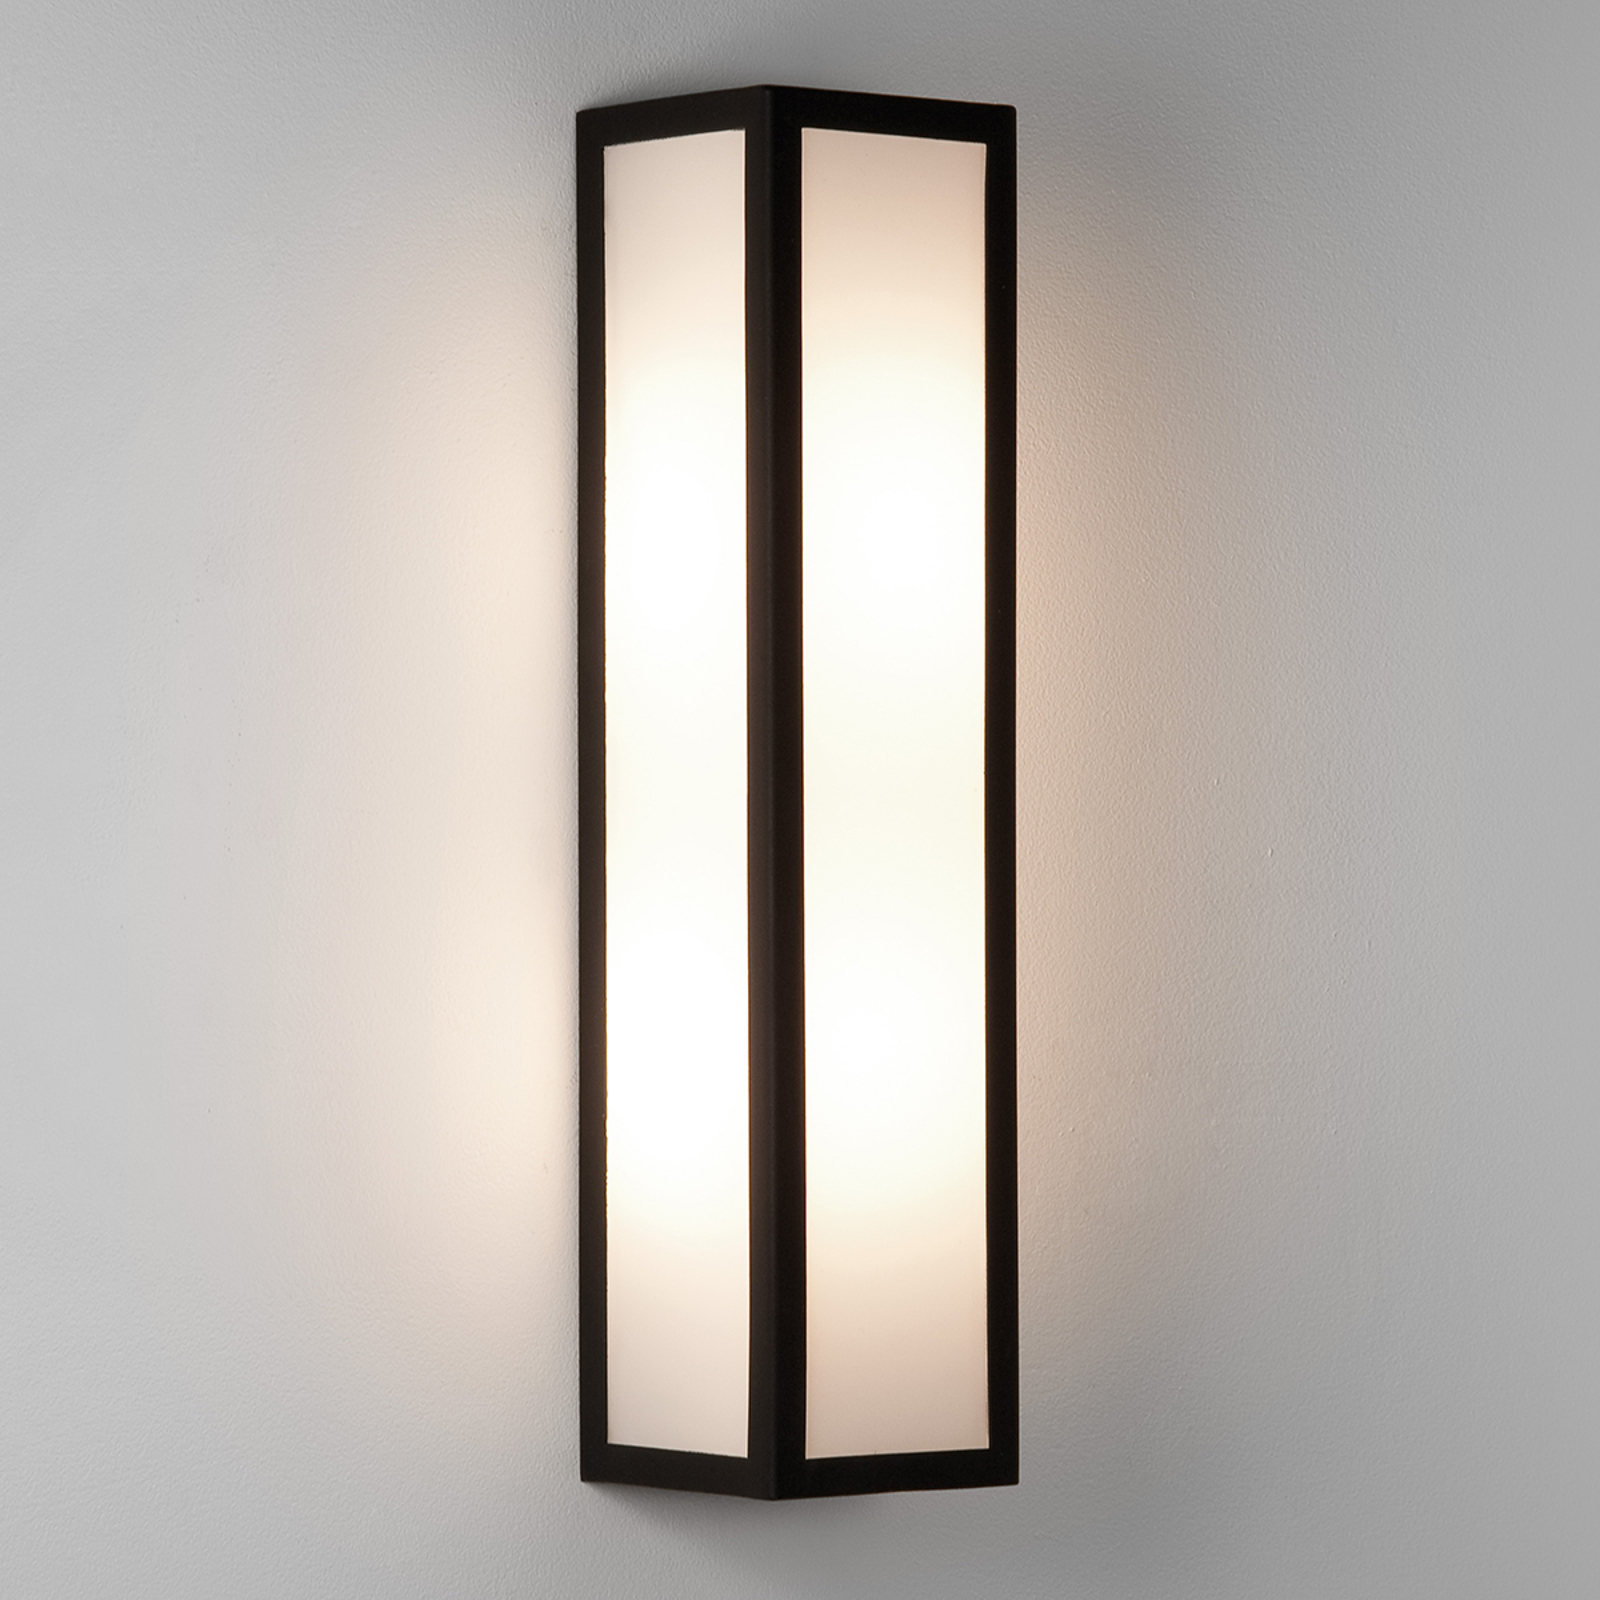 Salerno Outside Wall Light with White Glass_1020336_1